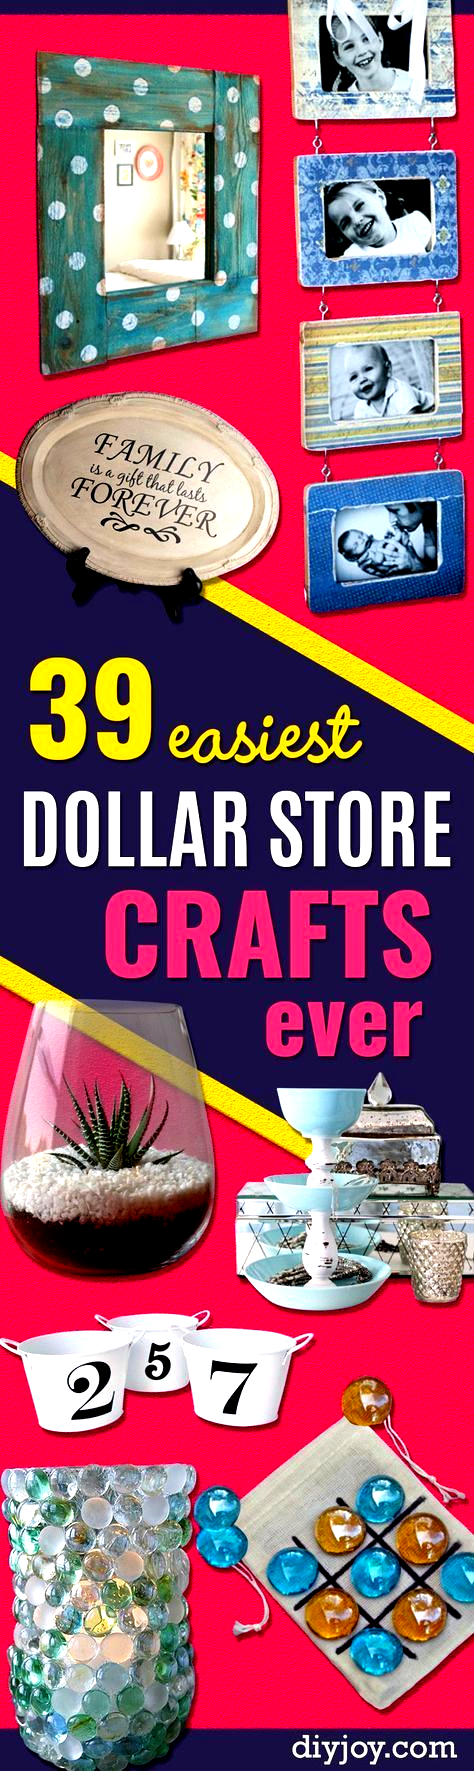 Diy projects to sell dollar tree thrift stores 49 ideas for 2019